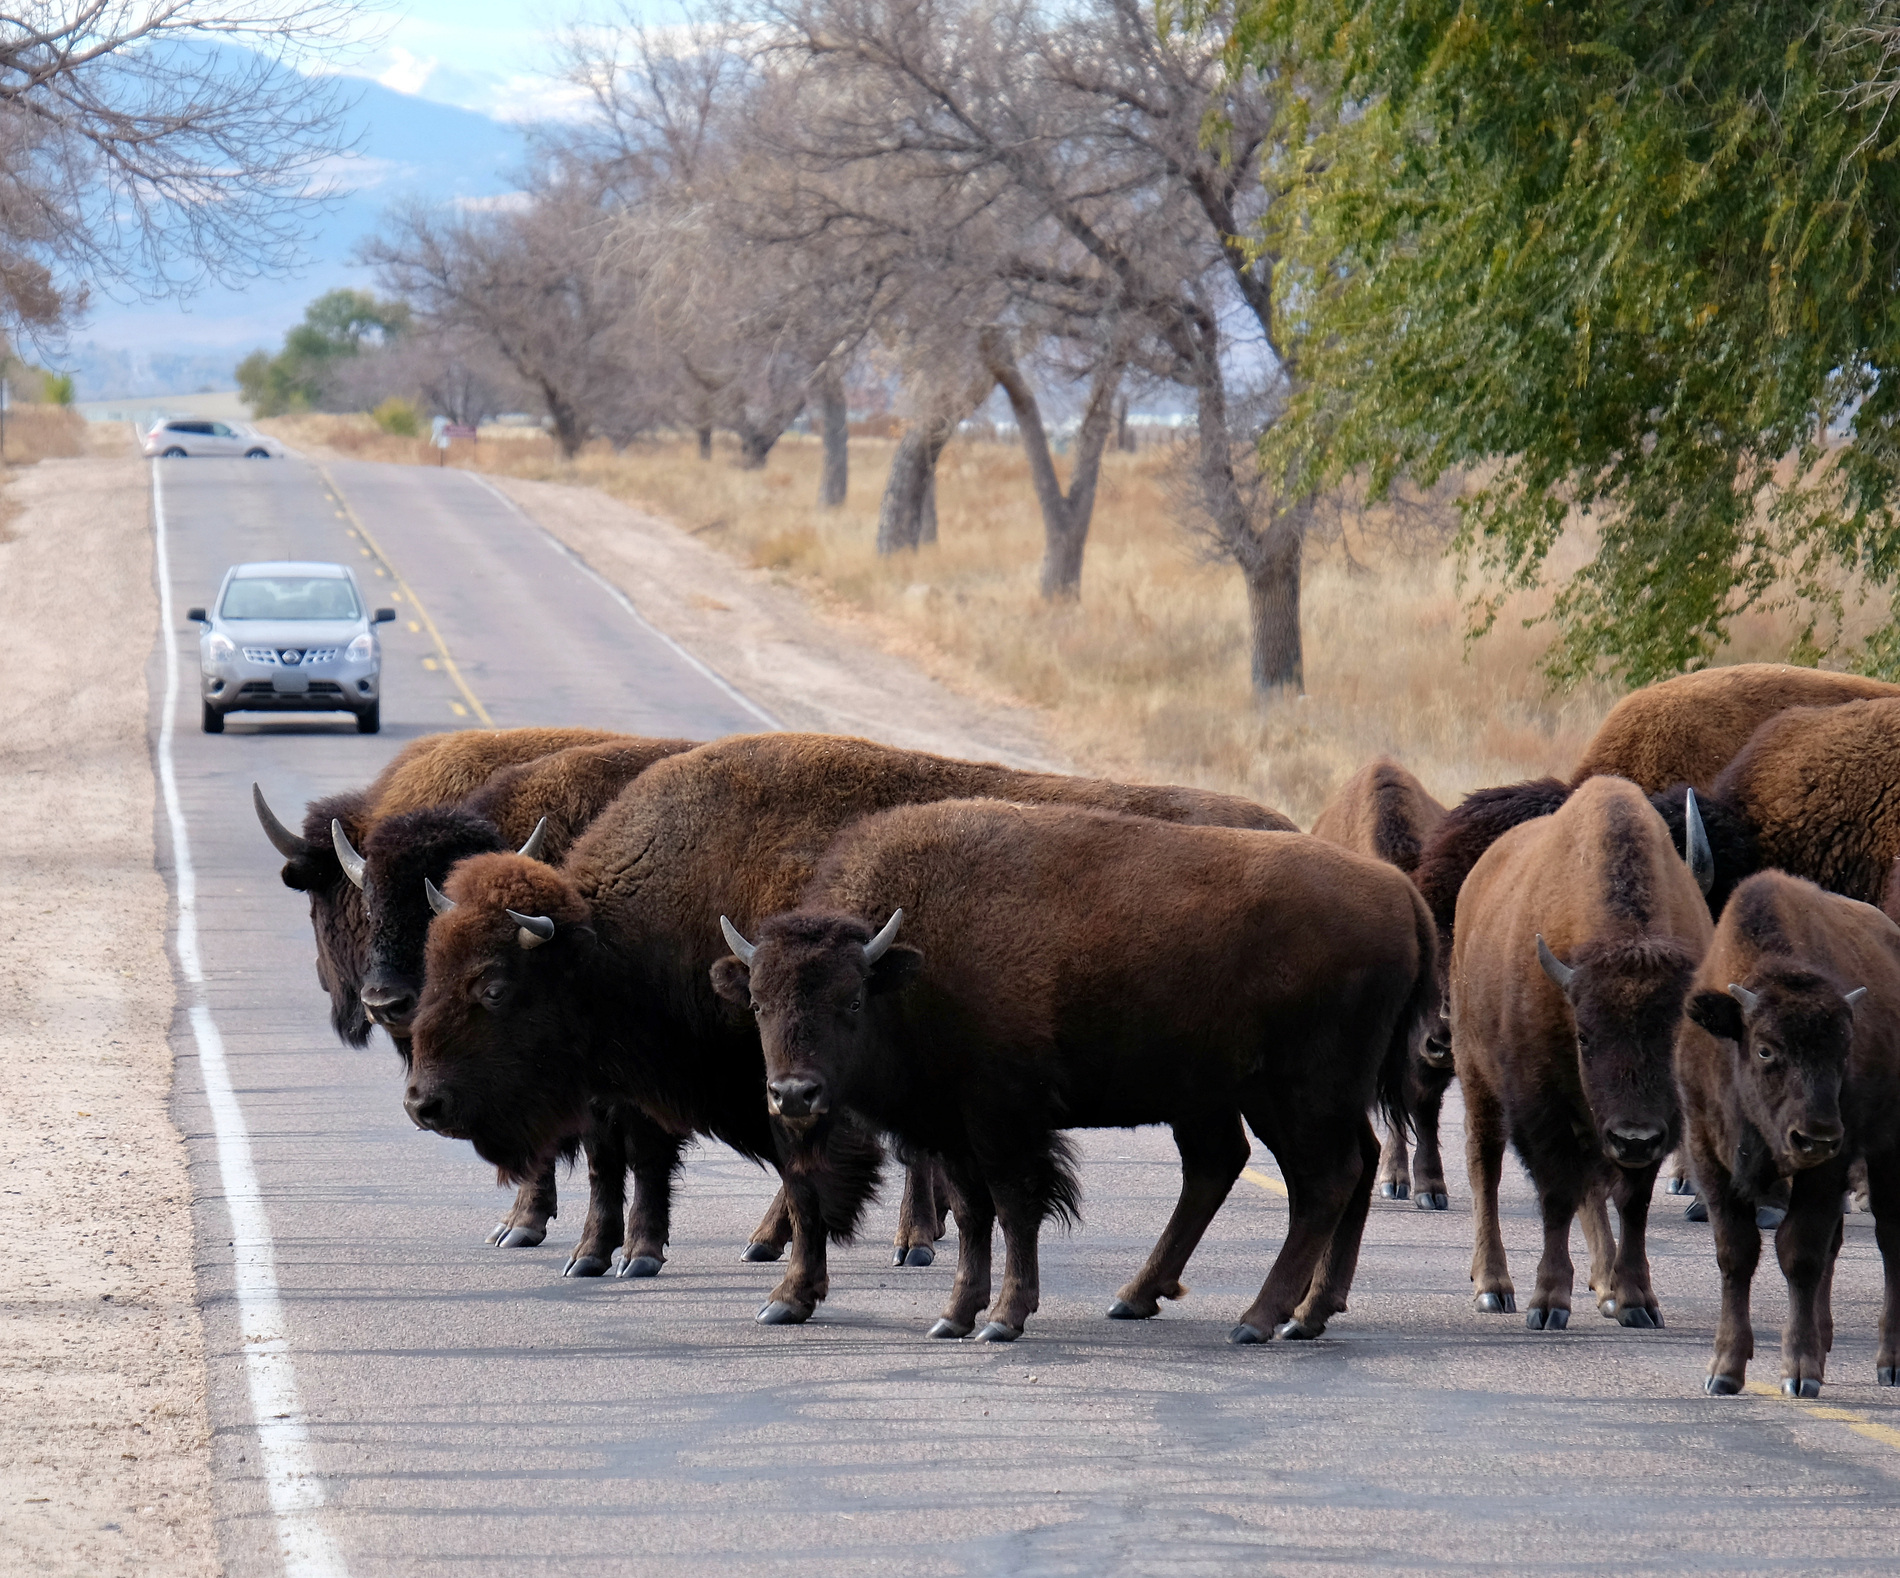 American Bison stand on a road, with passenger cars carrying visitors, in the Rocky Mountain Arsenal National Wildlife Refuge, near Denver, Colorado. Bison are also known as buffalo and the Latin term is Bison bison.